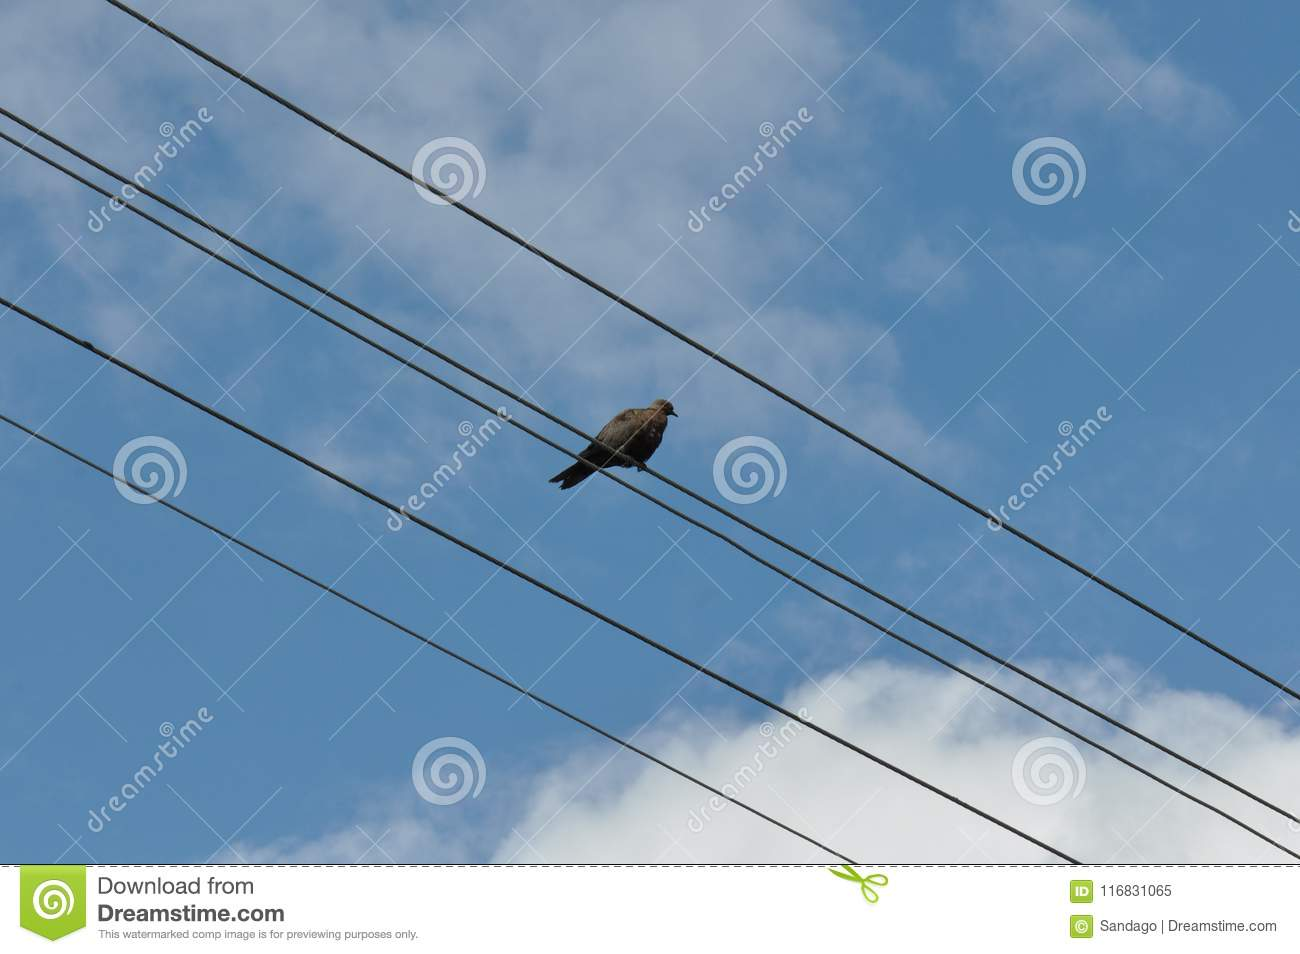 Bird on wire stock image. Image of finger, electric - 116831065